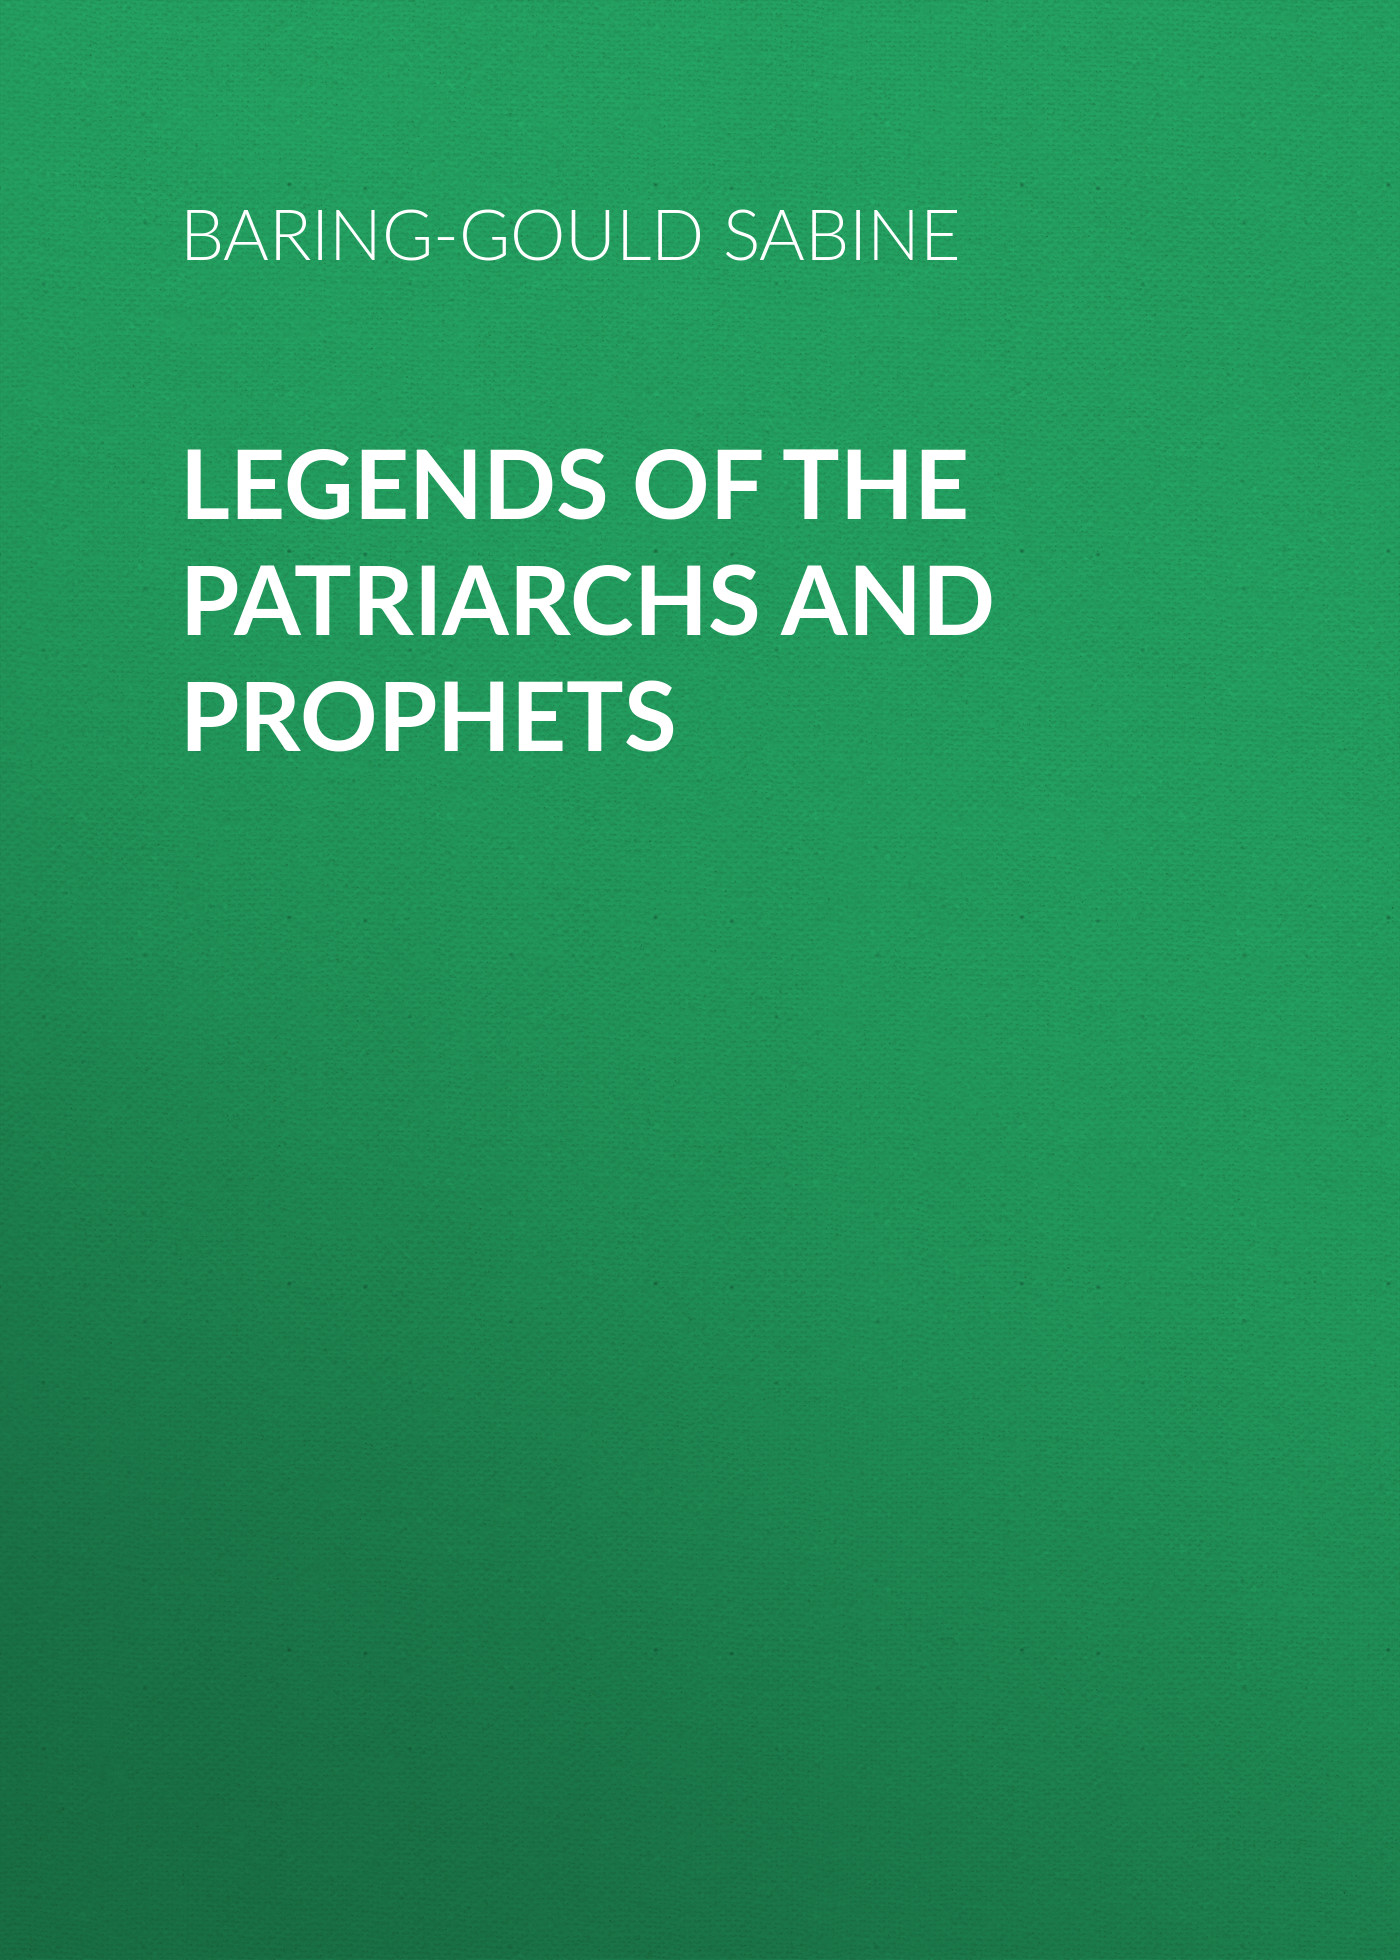 Baring-Gould Sabine Legends of the Patriarchs and Prophets bellett john gifford the patriarchs